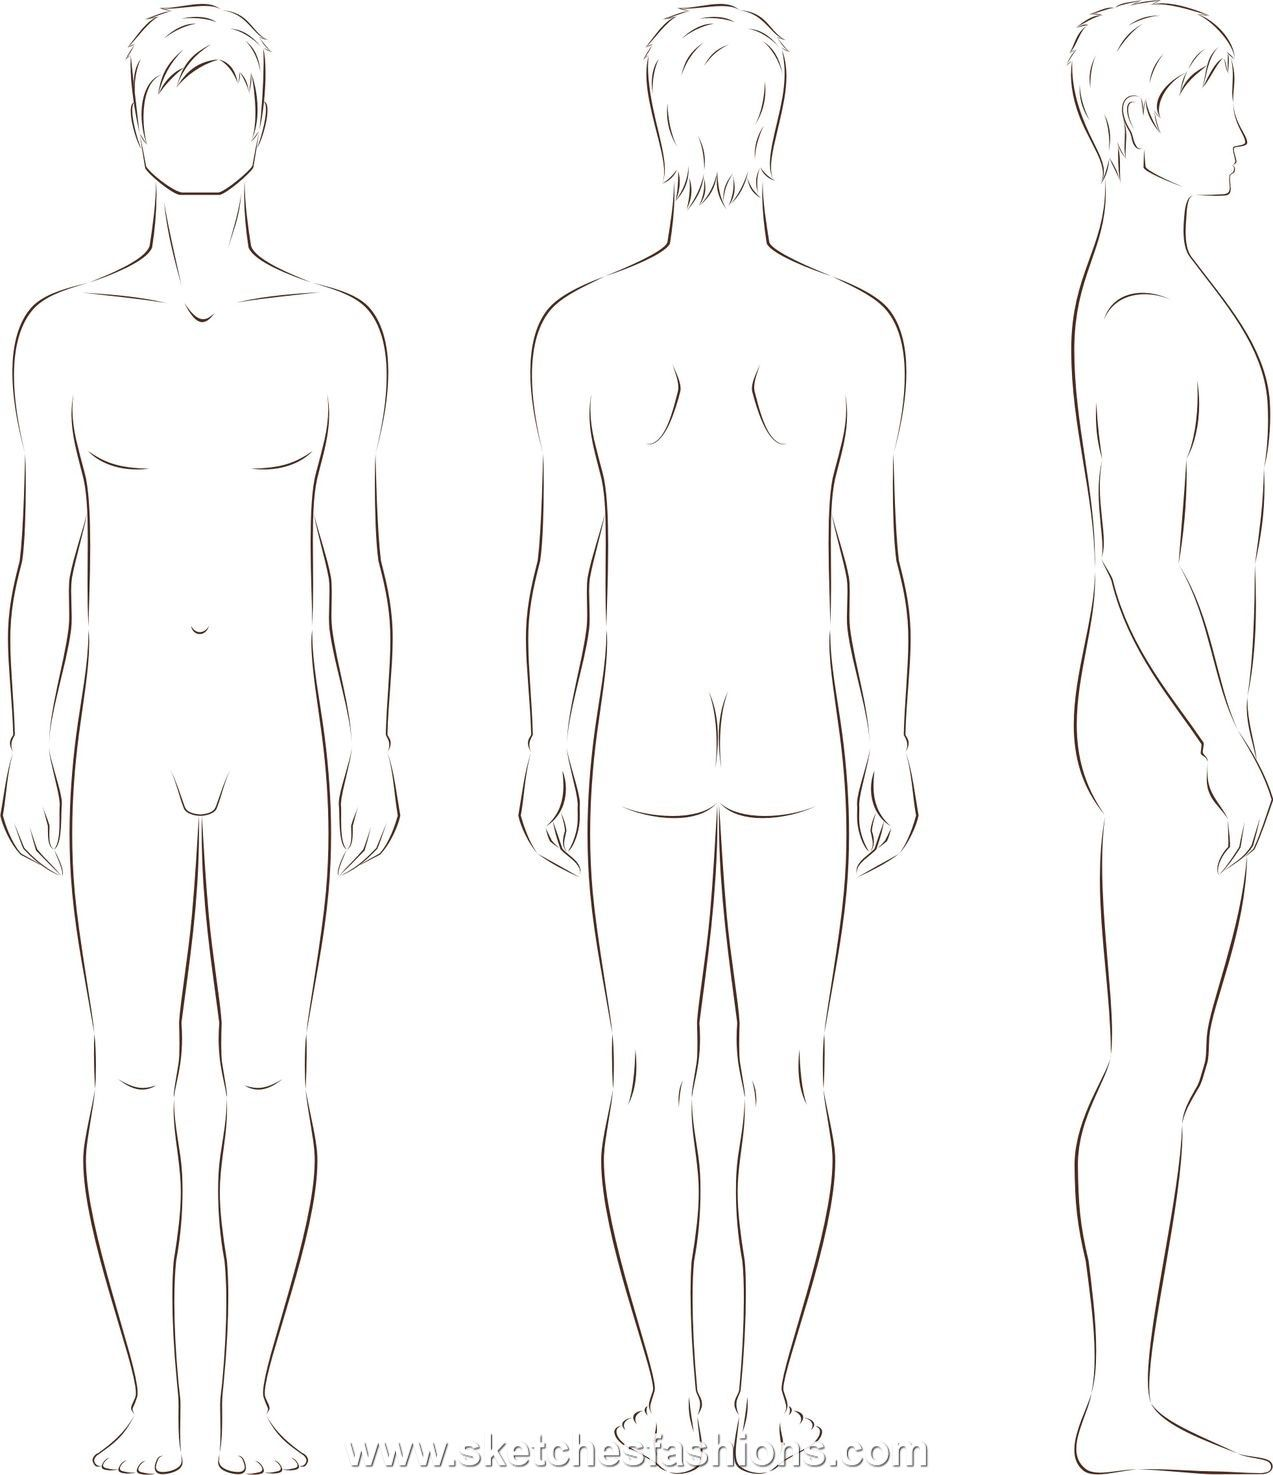 mens body proportion sketch | ART•Techniques•Instructions ...